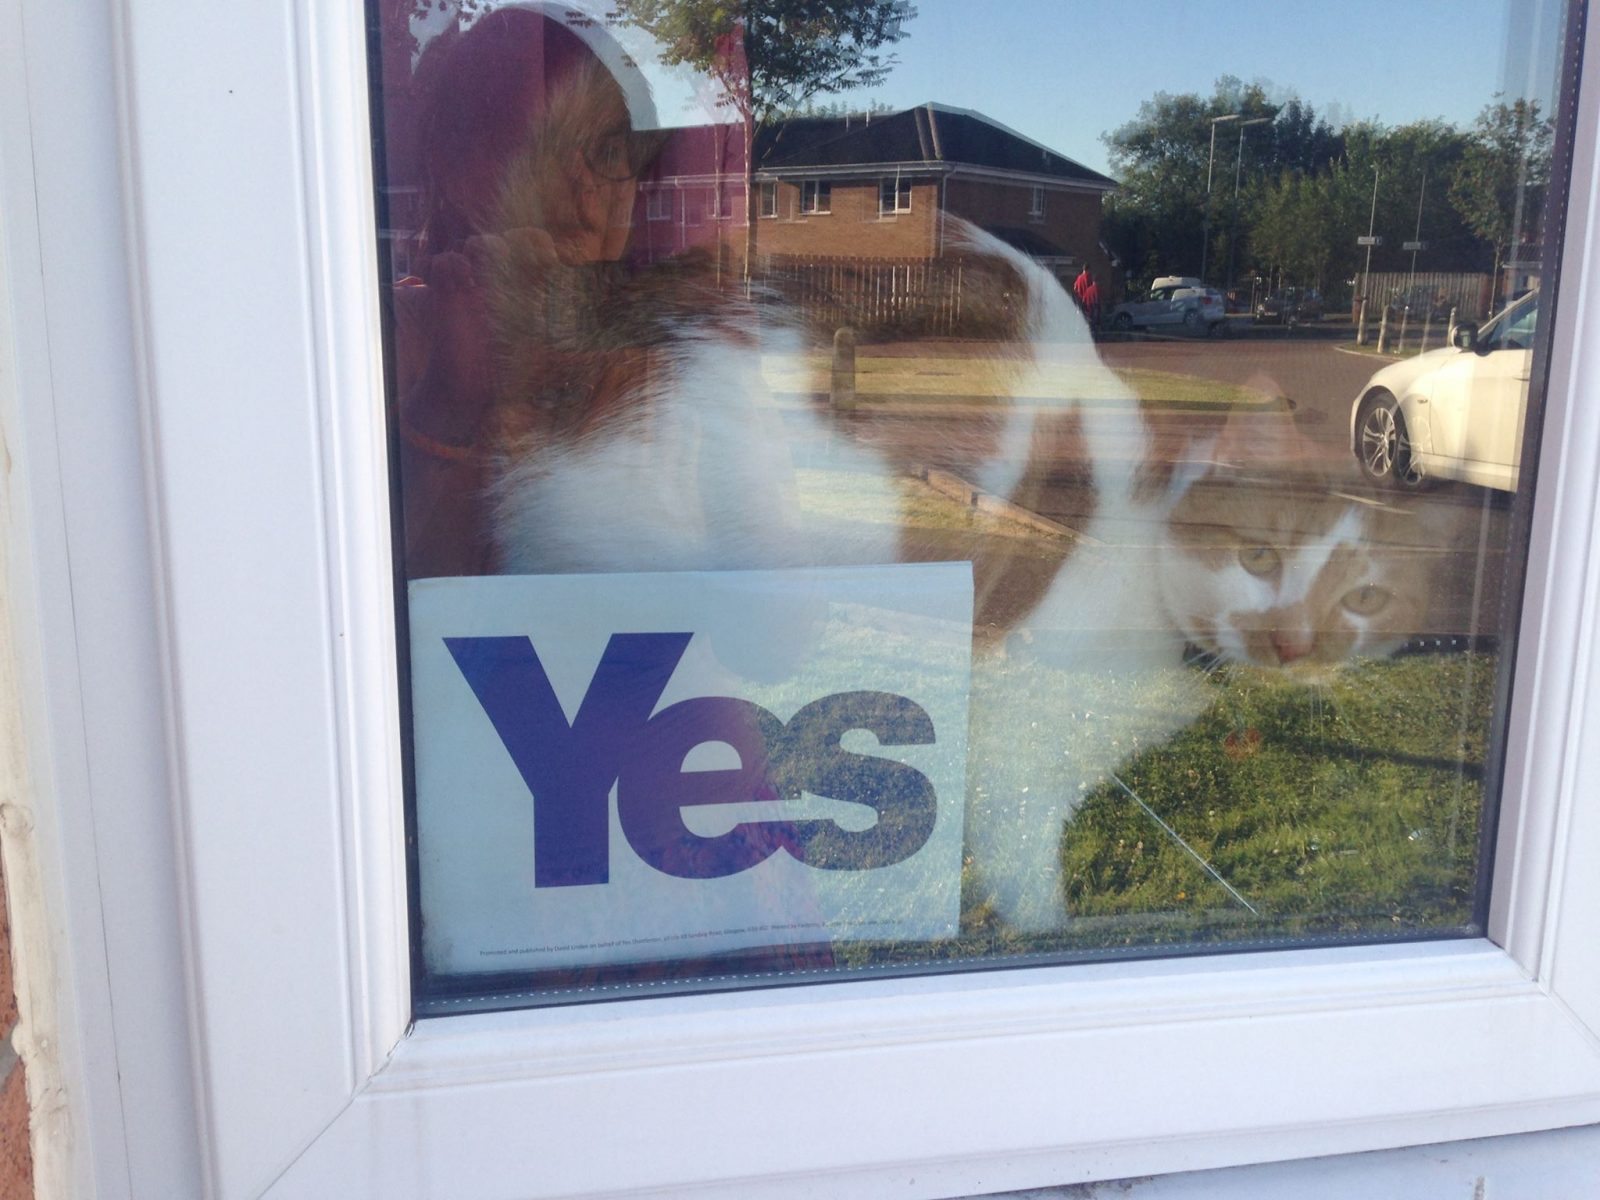 #yesbecause: it's our country, and we deserve the right to decide how to run it;